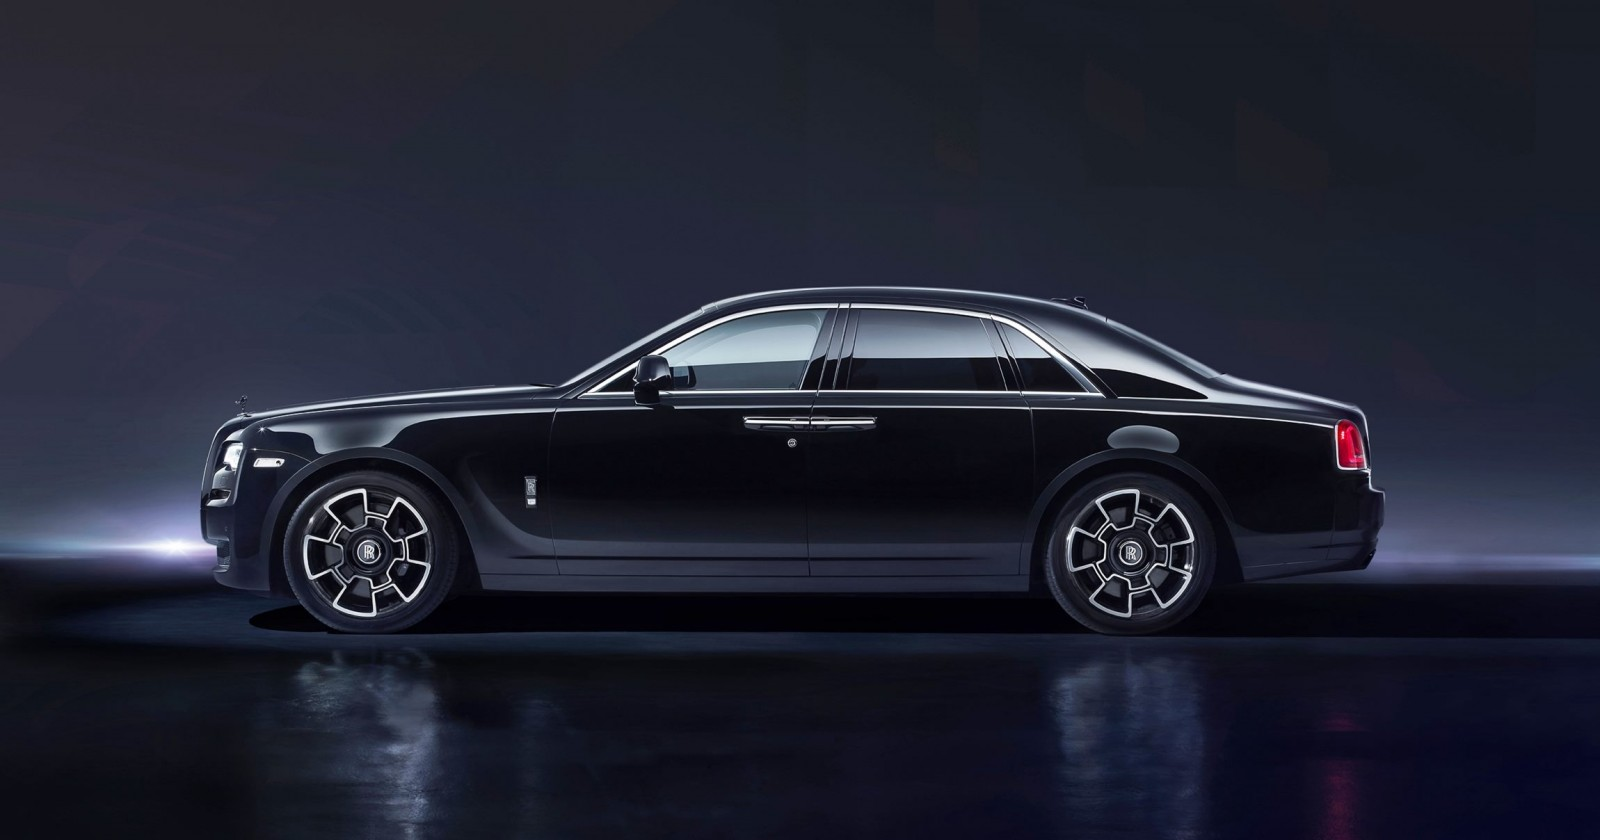 2017 Rolls-Royce BLACK BADGE Ghost And Wraith